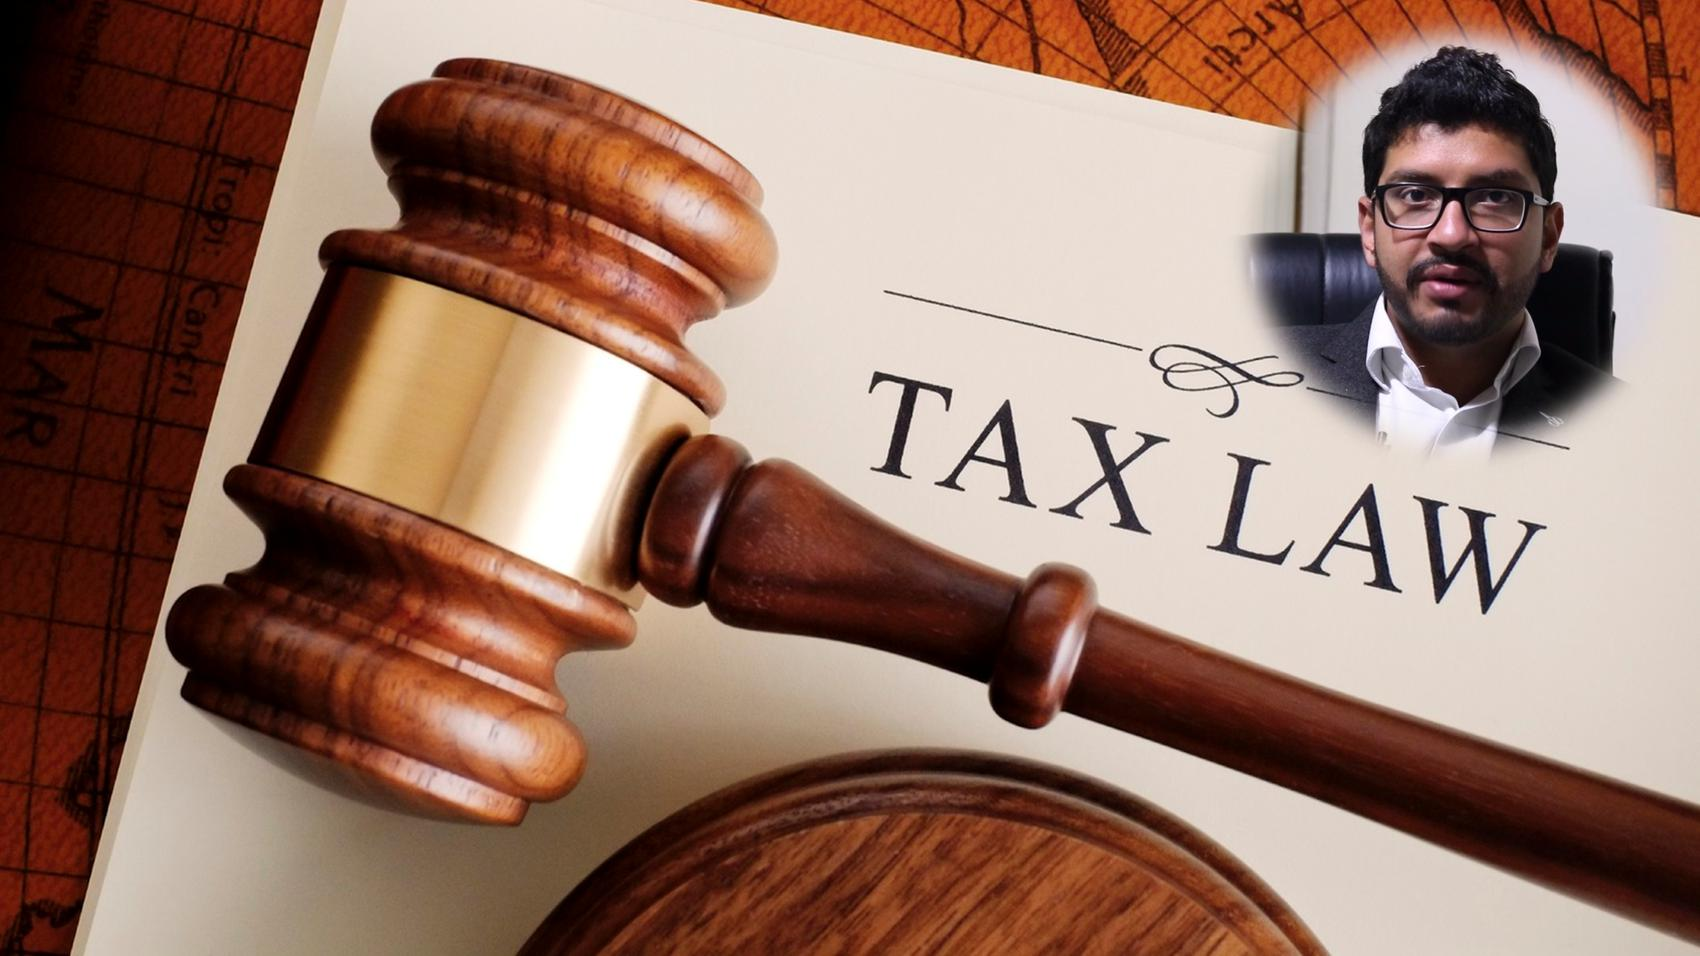 Career in Tax Law